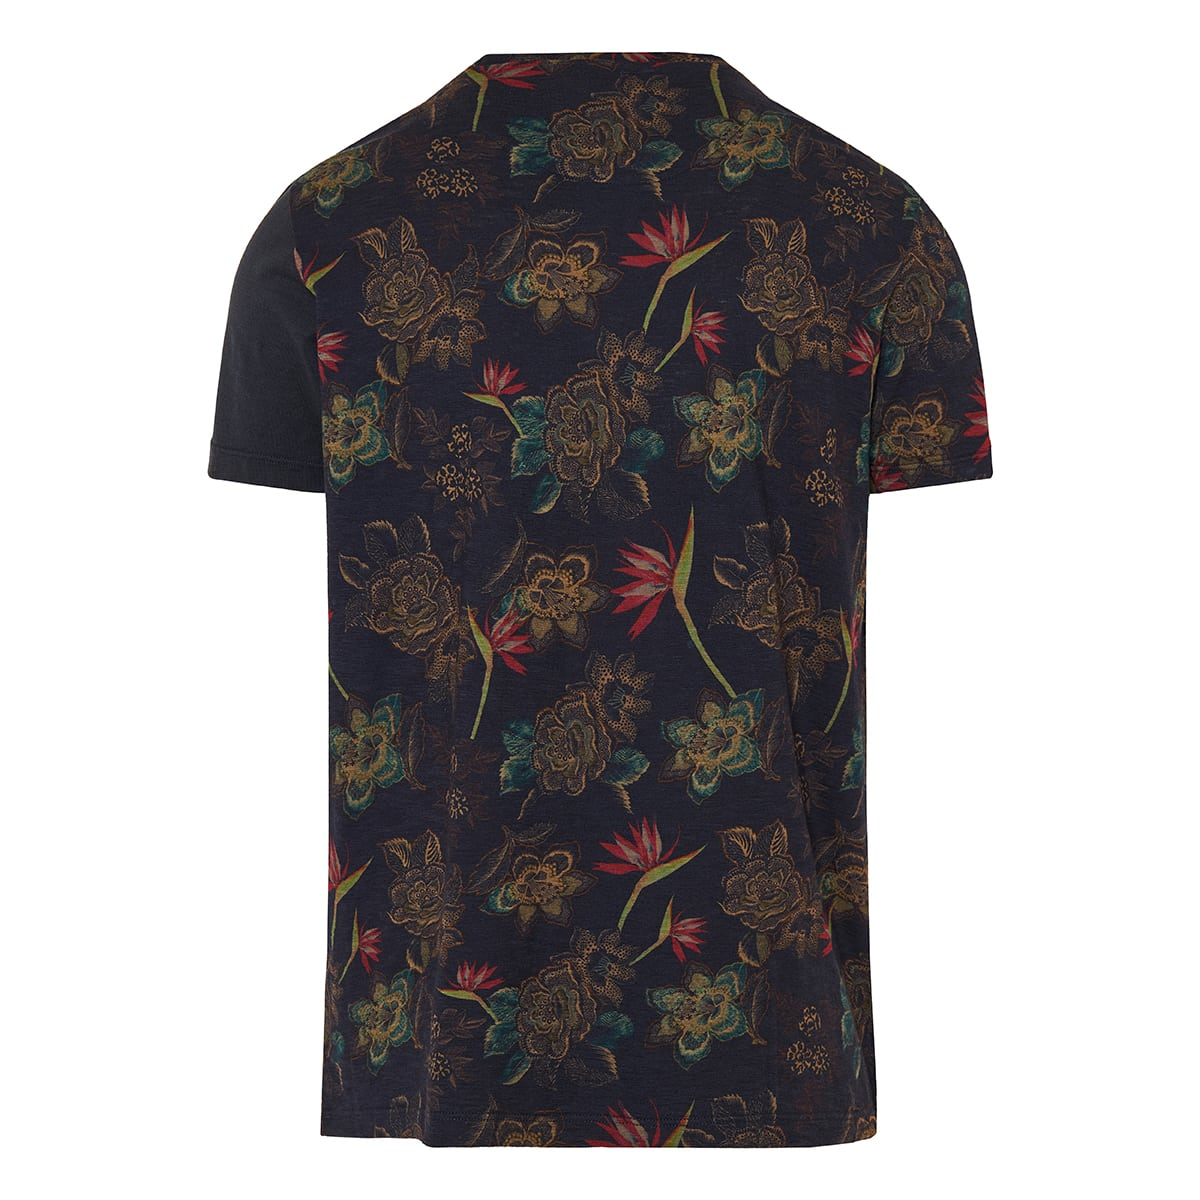 Patchwork printed cotton t-shirt